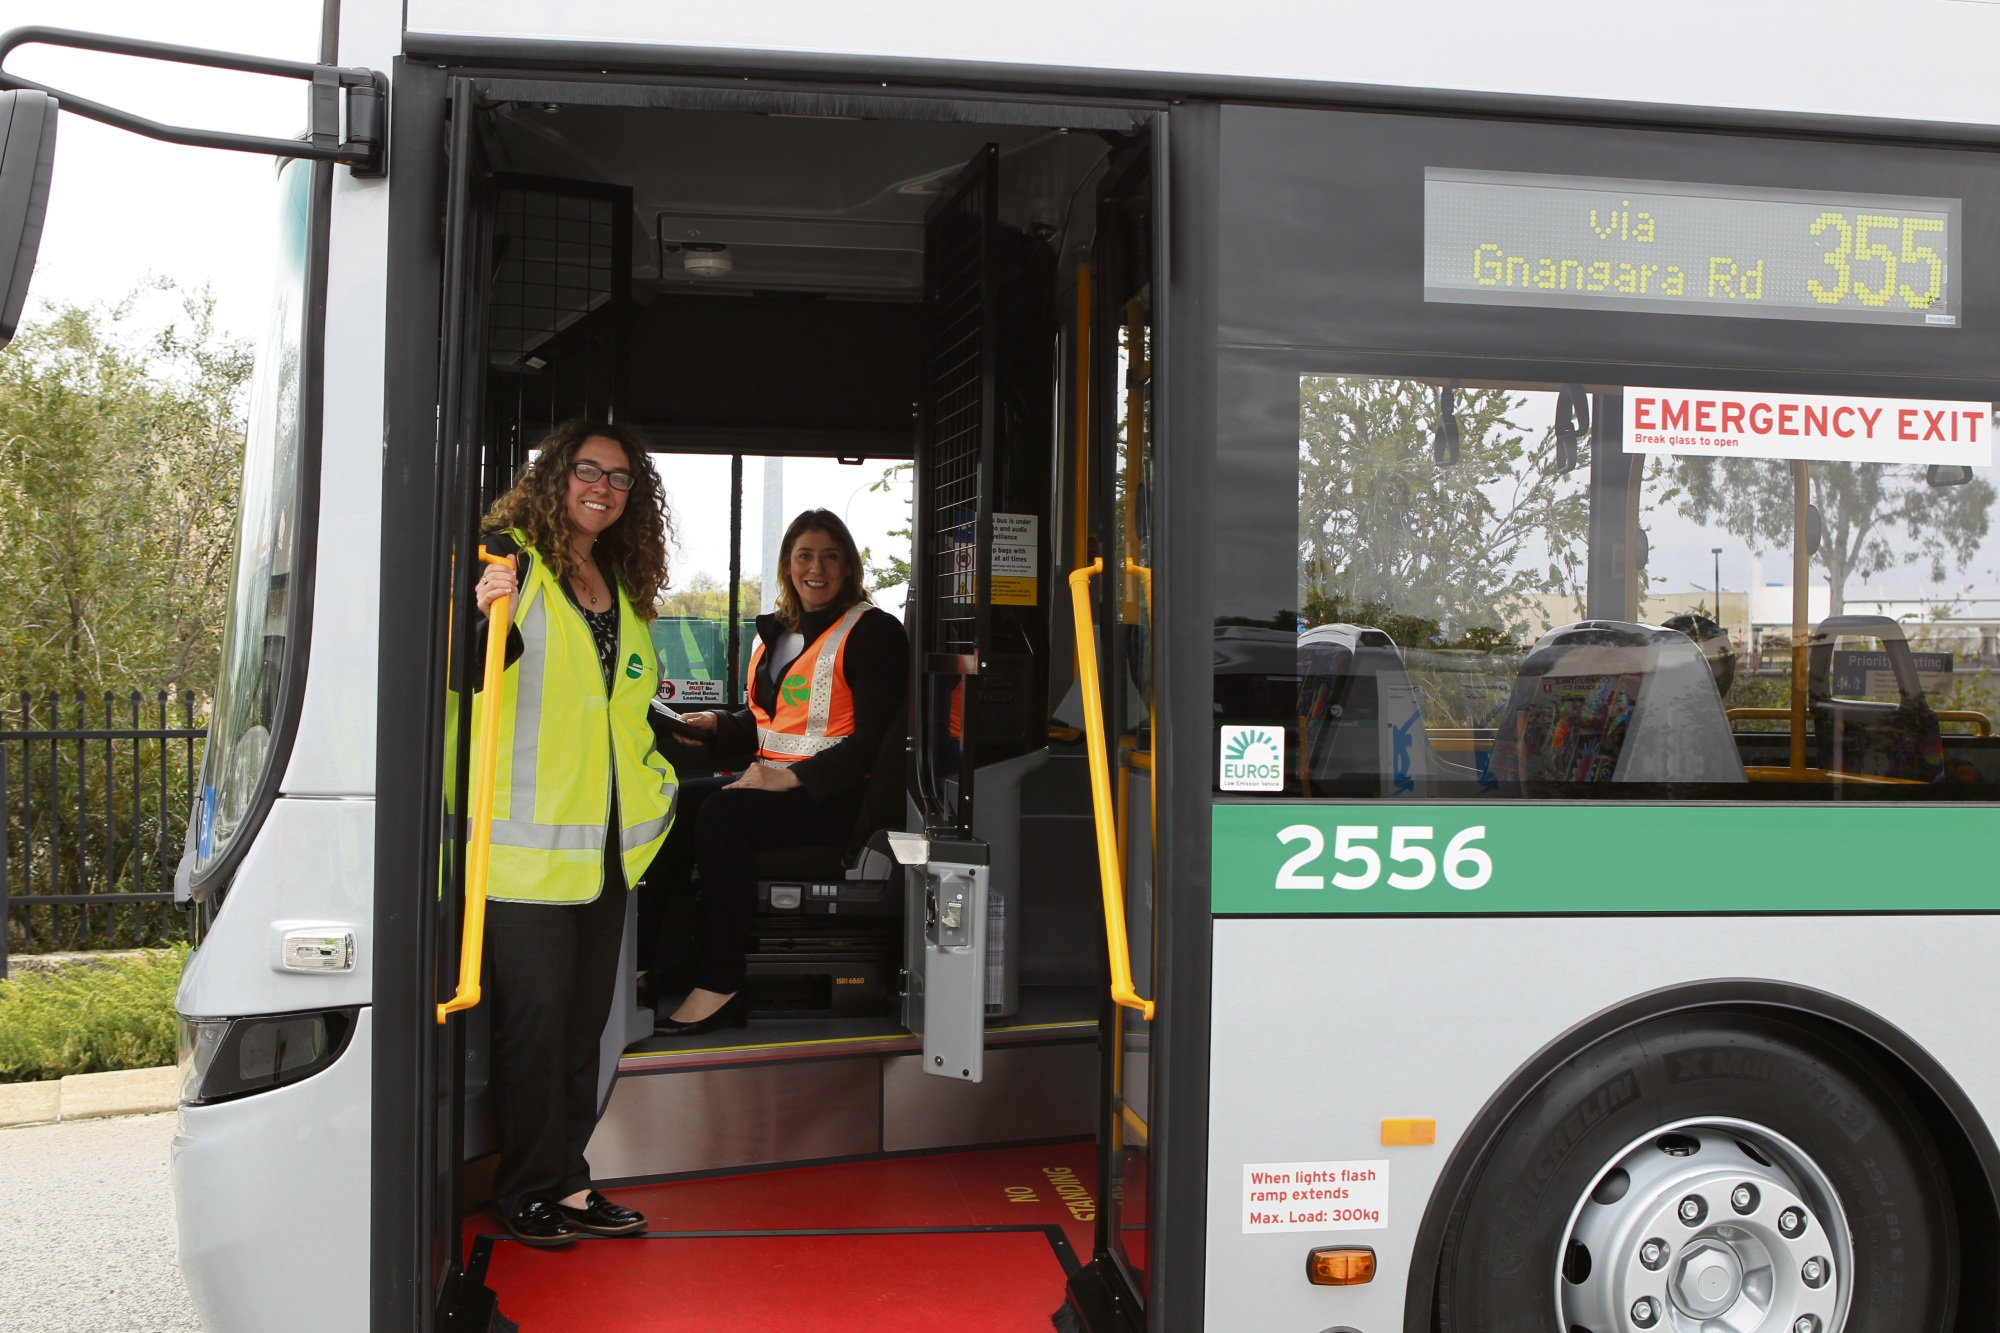 Swan Hills MLA Jessica Shaw and Transport Minister Rita Saffioti, who announced the new bus service to Whitfords from Ellenbrook. Picture: Lisa Thomas